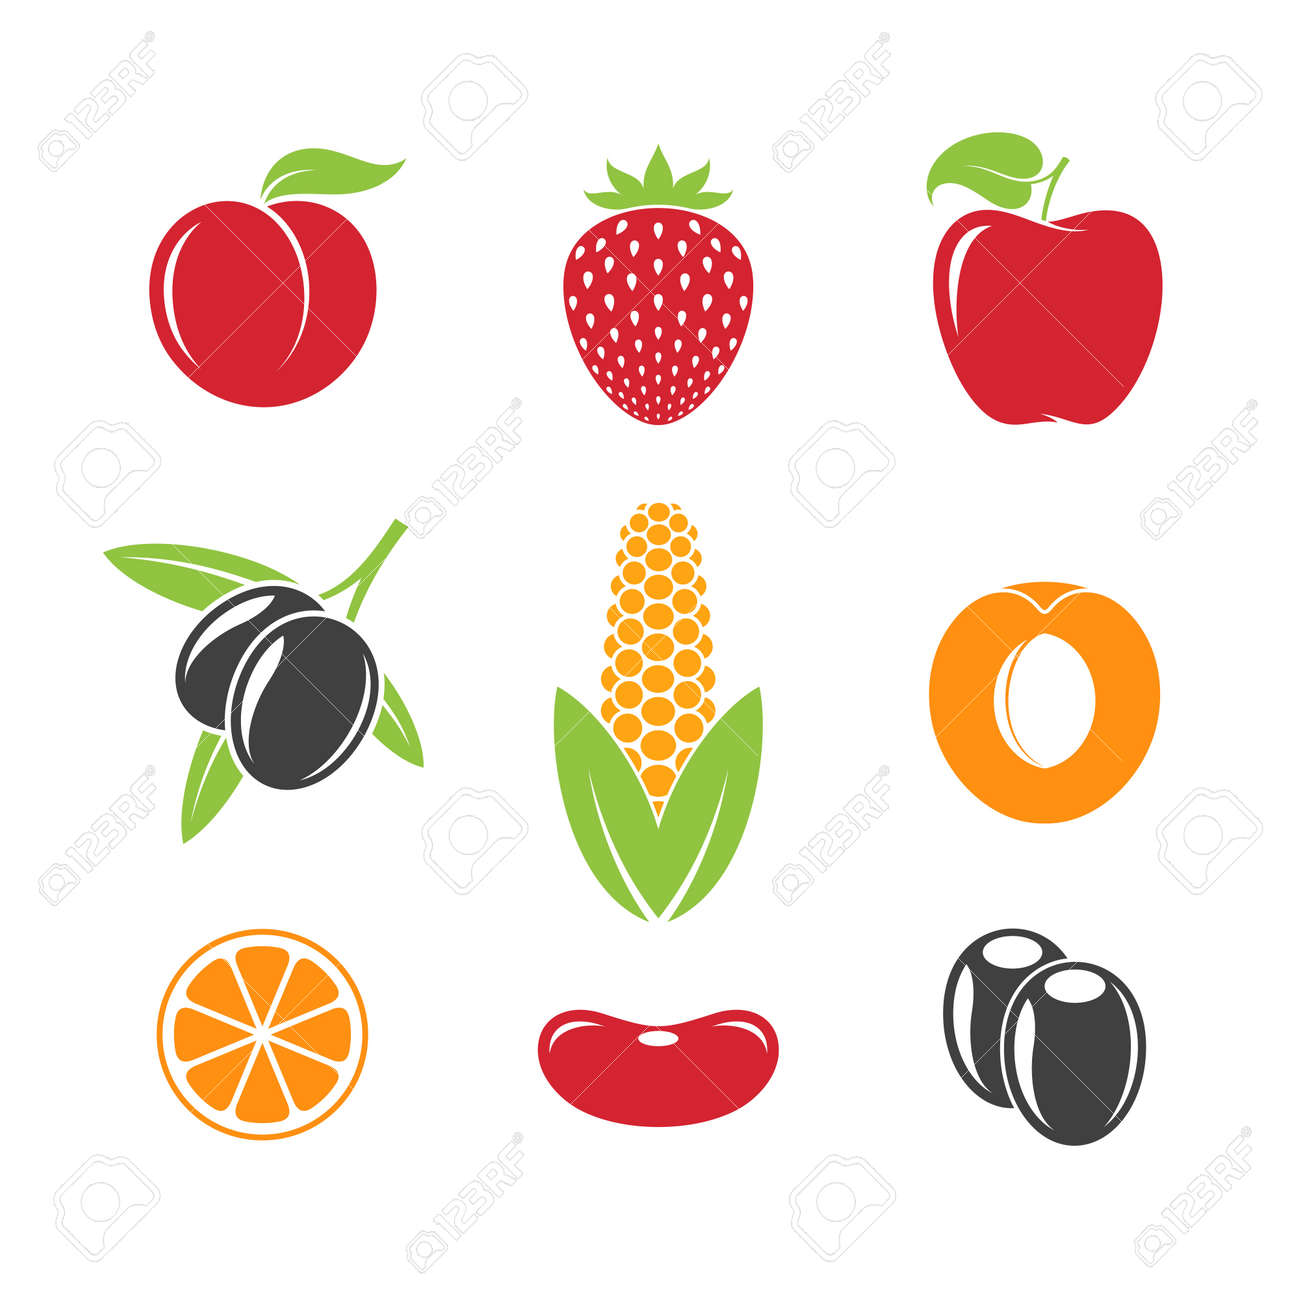 abstract fruit and vegetables vector illustration royalty free rh 123rf com passion fruit vectors passion fruit vectors